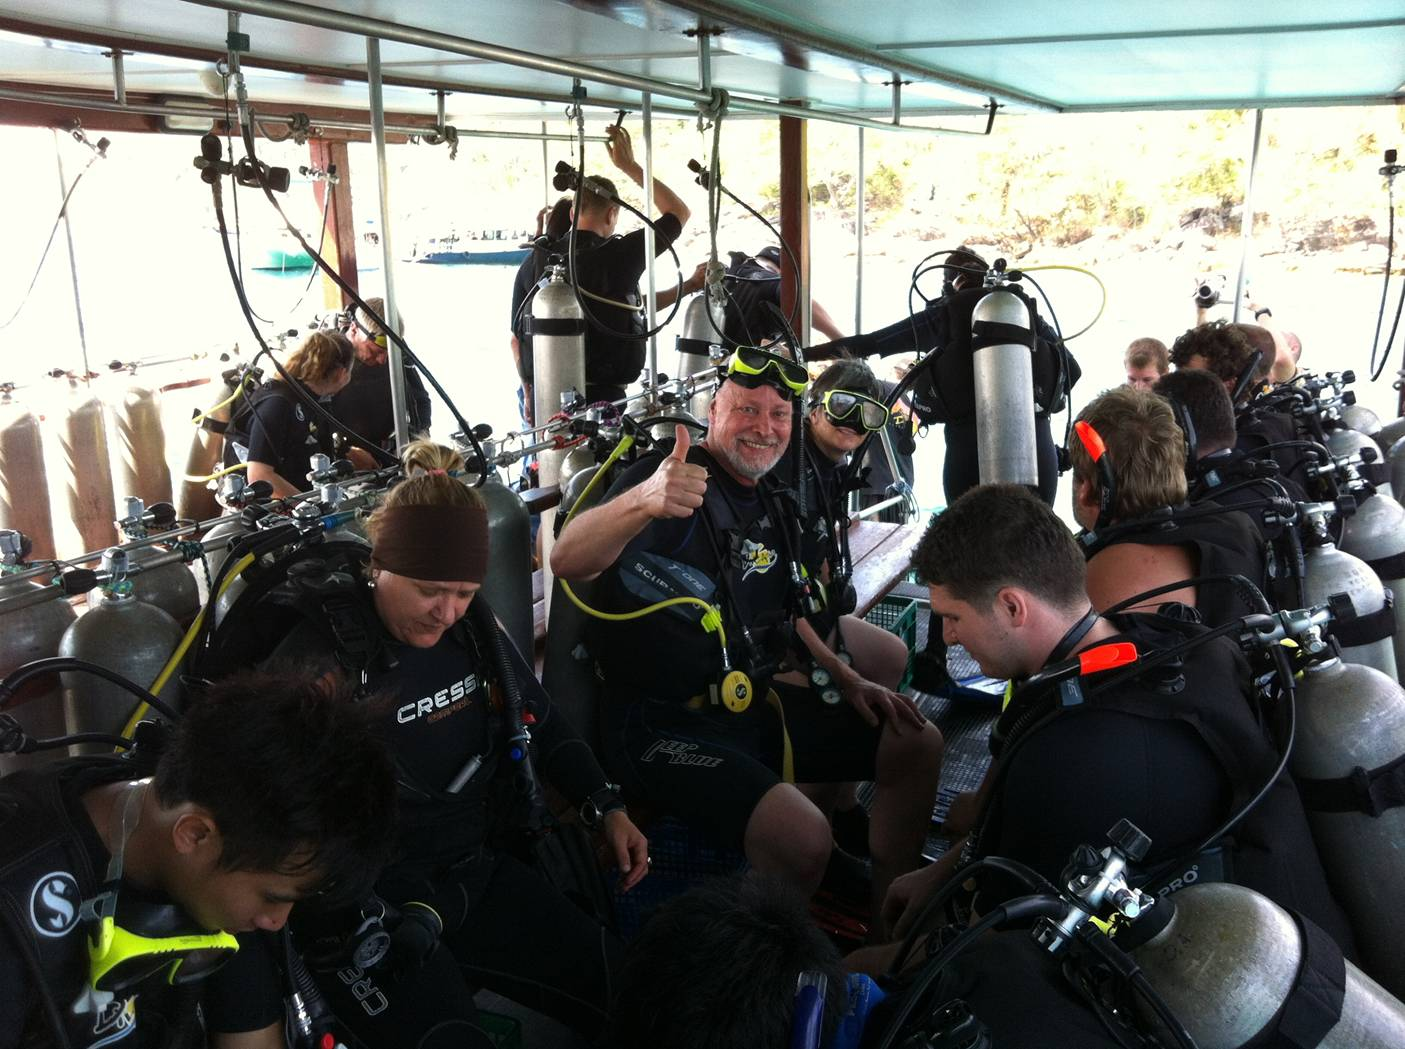 Picture: David suited up and ready for his first dive since 2001.  Dive Asia, Phuket Island, Thailand